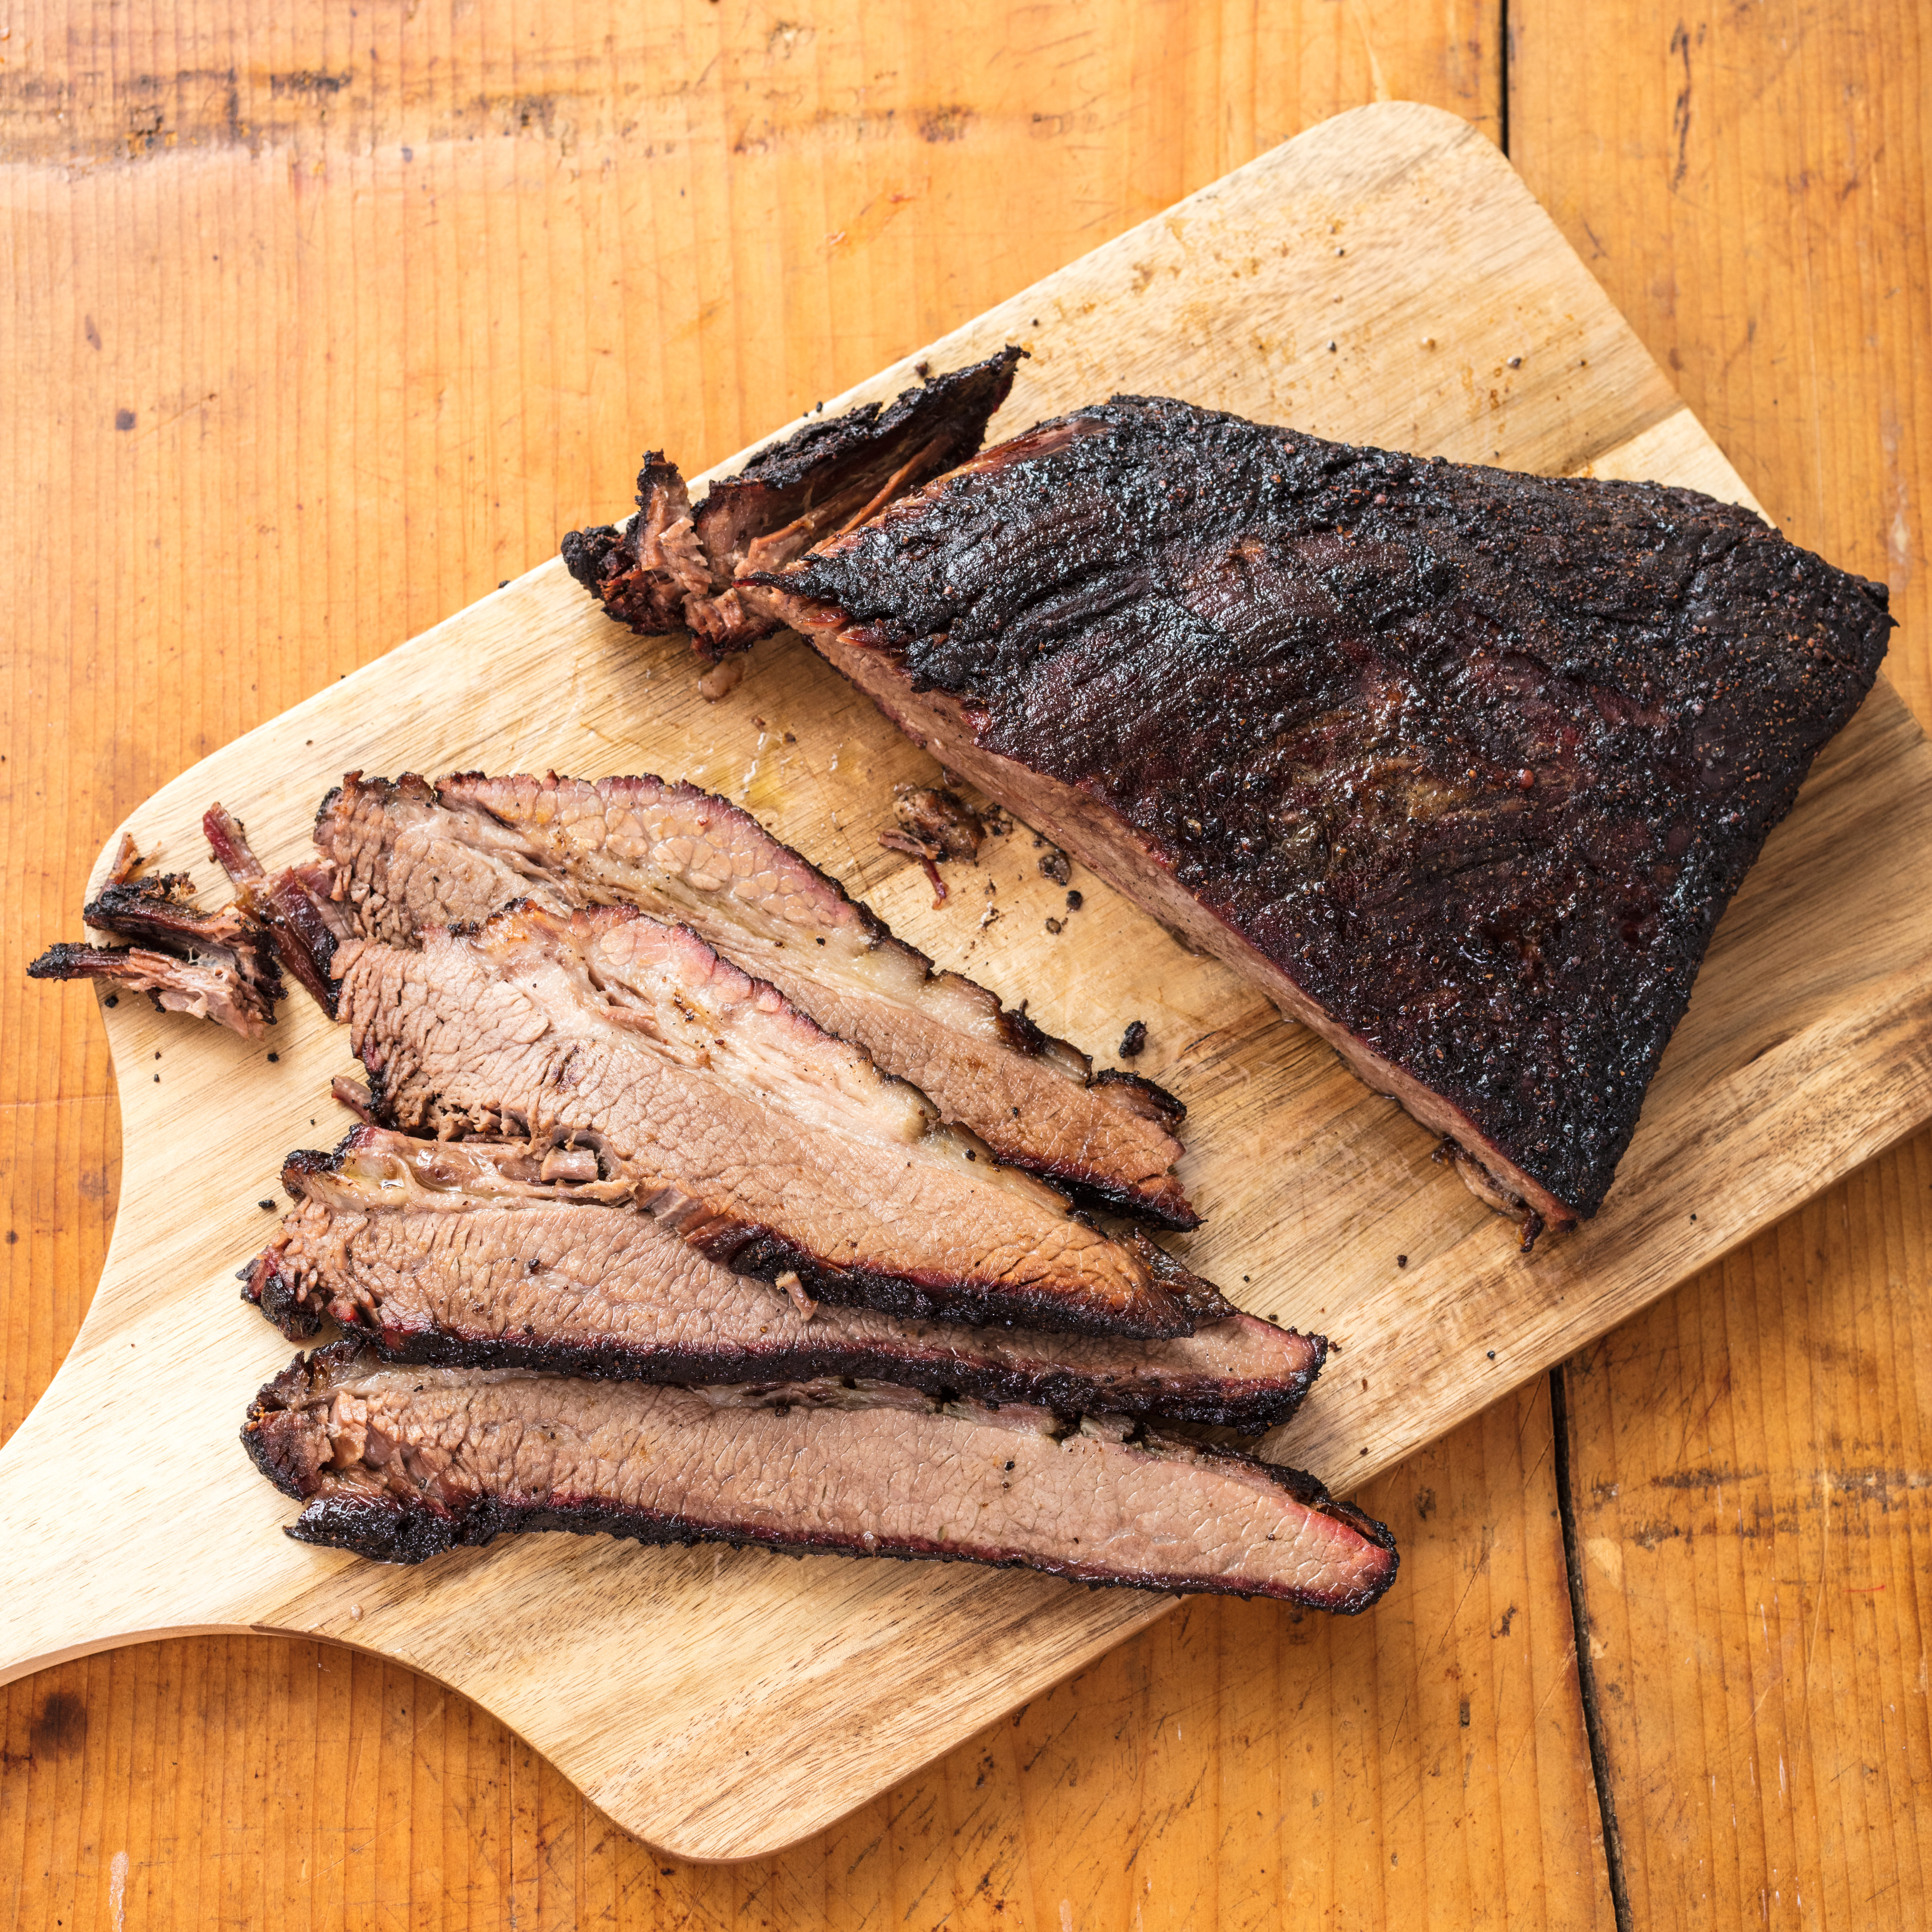 Barbecued Beef Brisket On The Charcoal Grill Cook S Illustrated